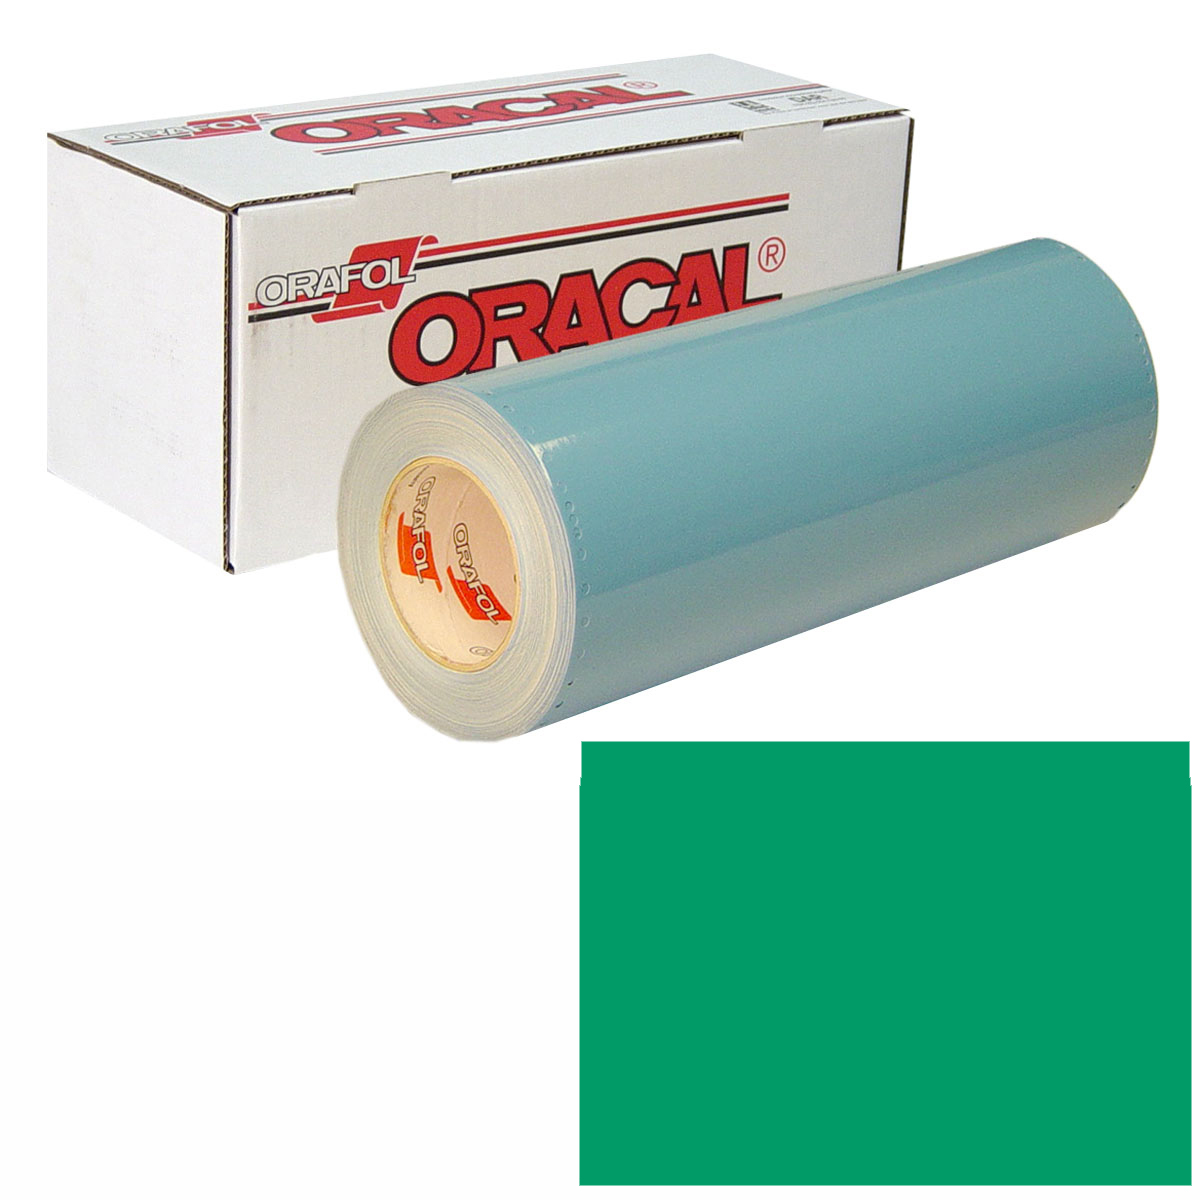 ORACAL 751 15in X 10yd 062 Light Green